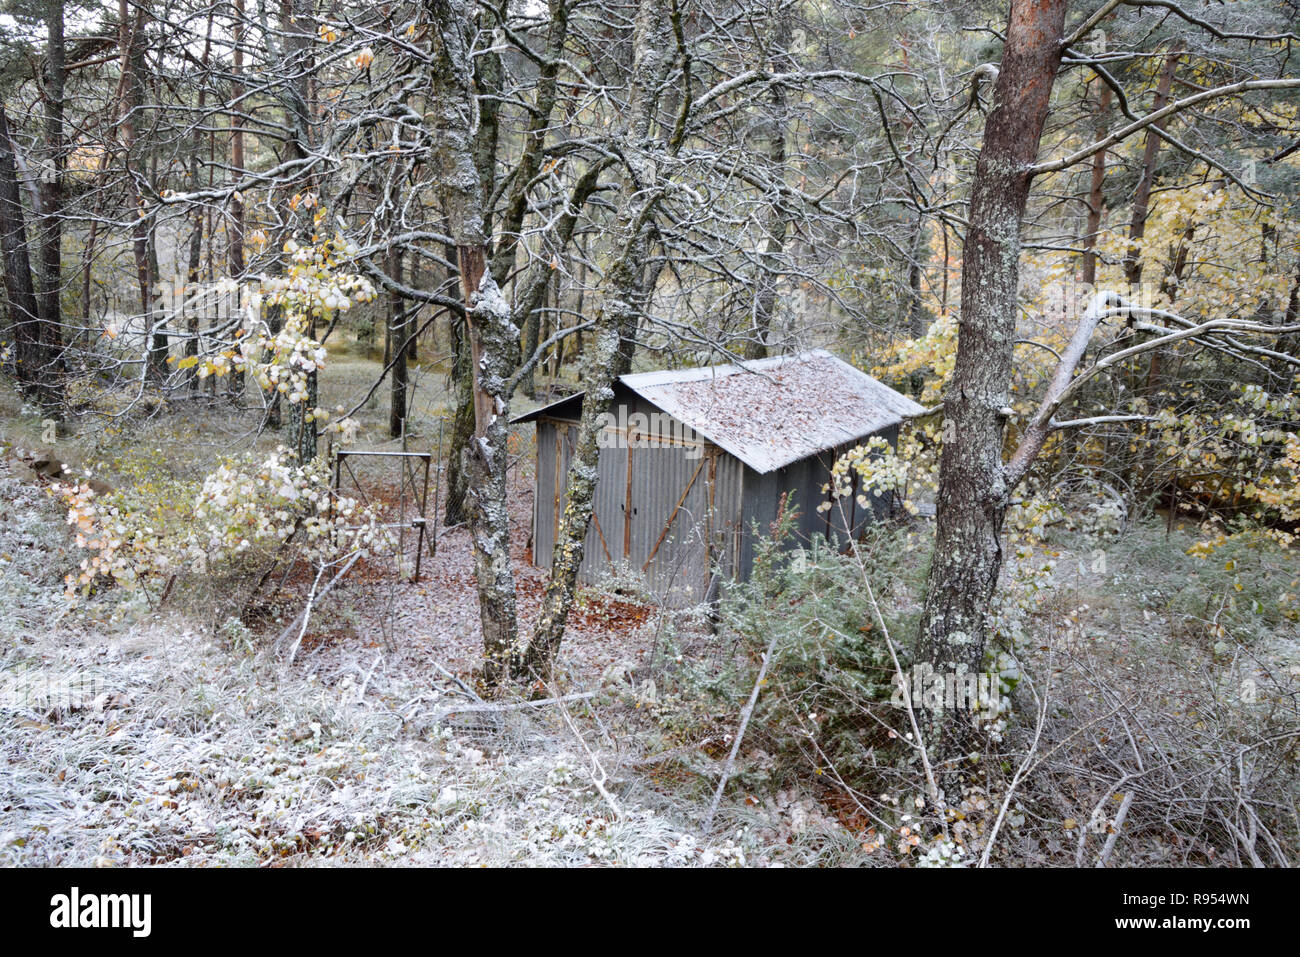 Corrugated Iron Hut in Frosty Forest - Stock Image